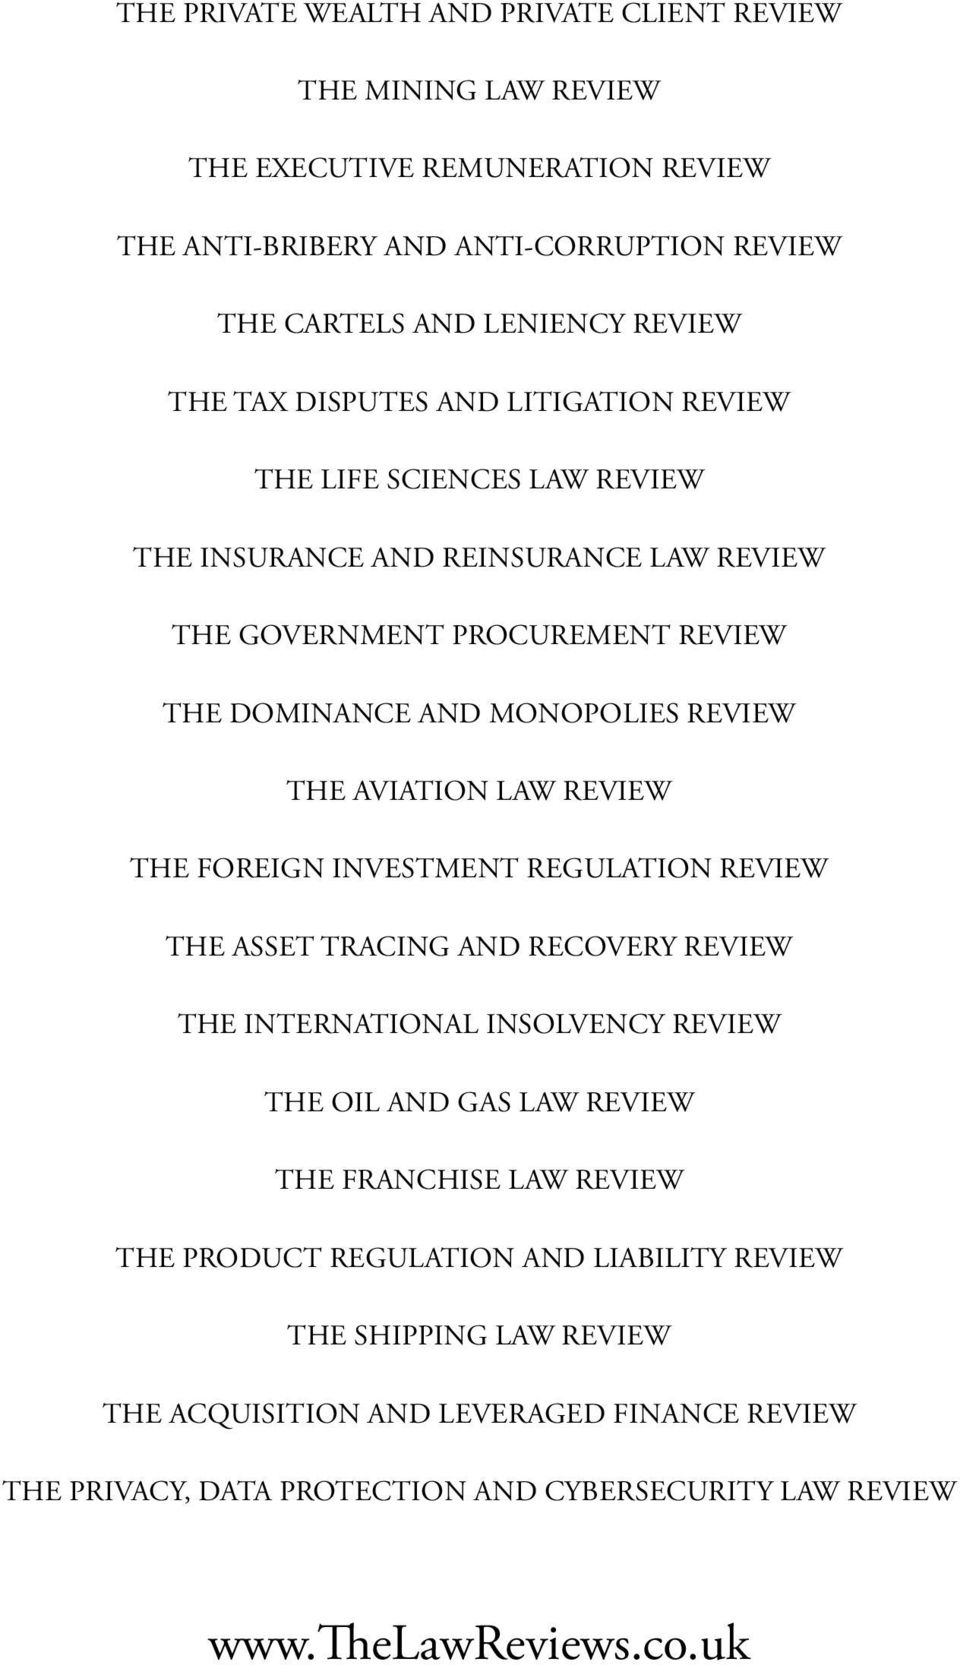 LAW REVIEW THE FOREIGN INVESTMENT REGULATION REVIEW THE ASSET TRACING AND RECOVERY REVIEW THE INTERNATIONAL INSOLVENCY REVIEW THE OIL AND GAS LAW REVIEW THE FRANCHISE LAW REVIEW THE